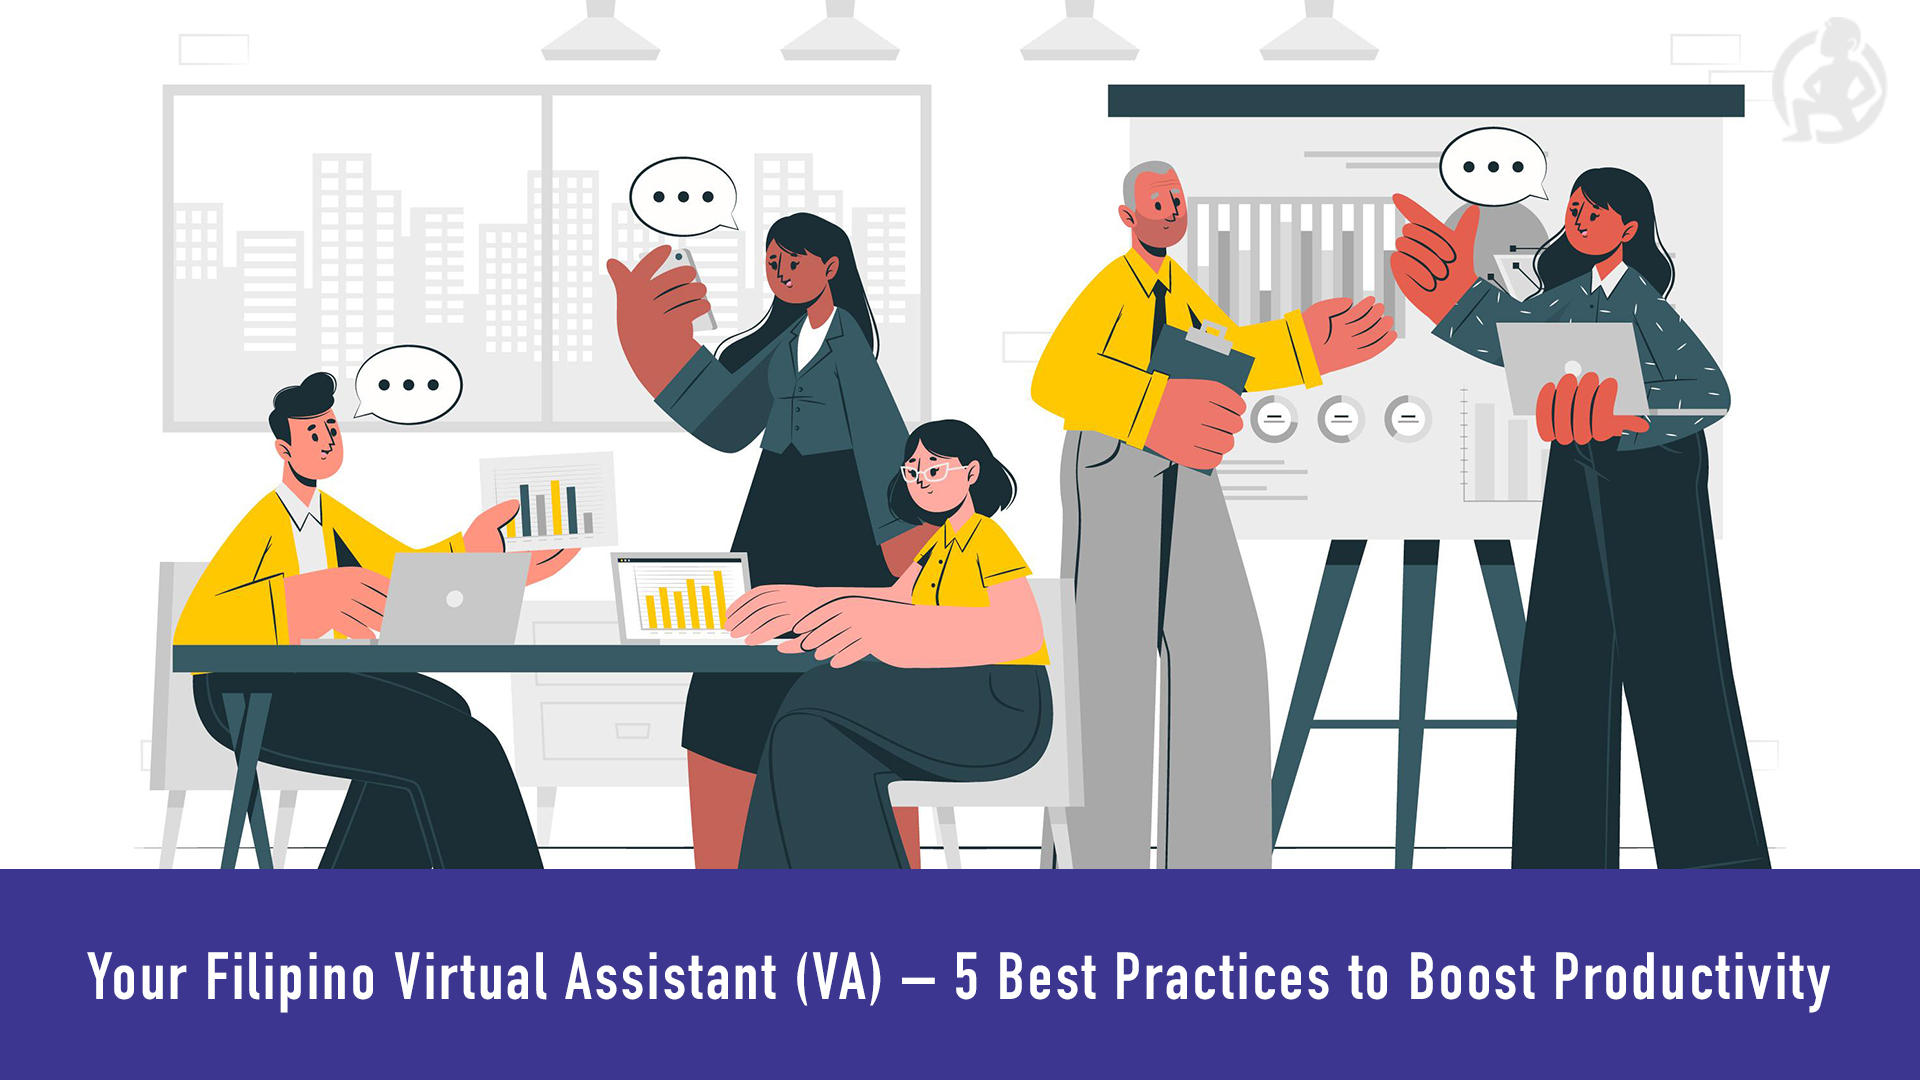 Your Filipino Virtual Assistant (VA) – 5 Best Practices to Boost Productivity Cover